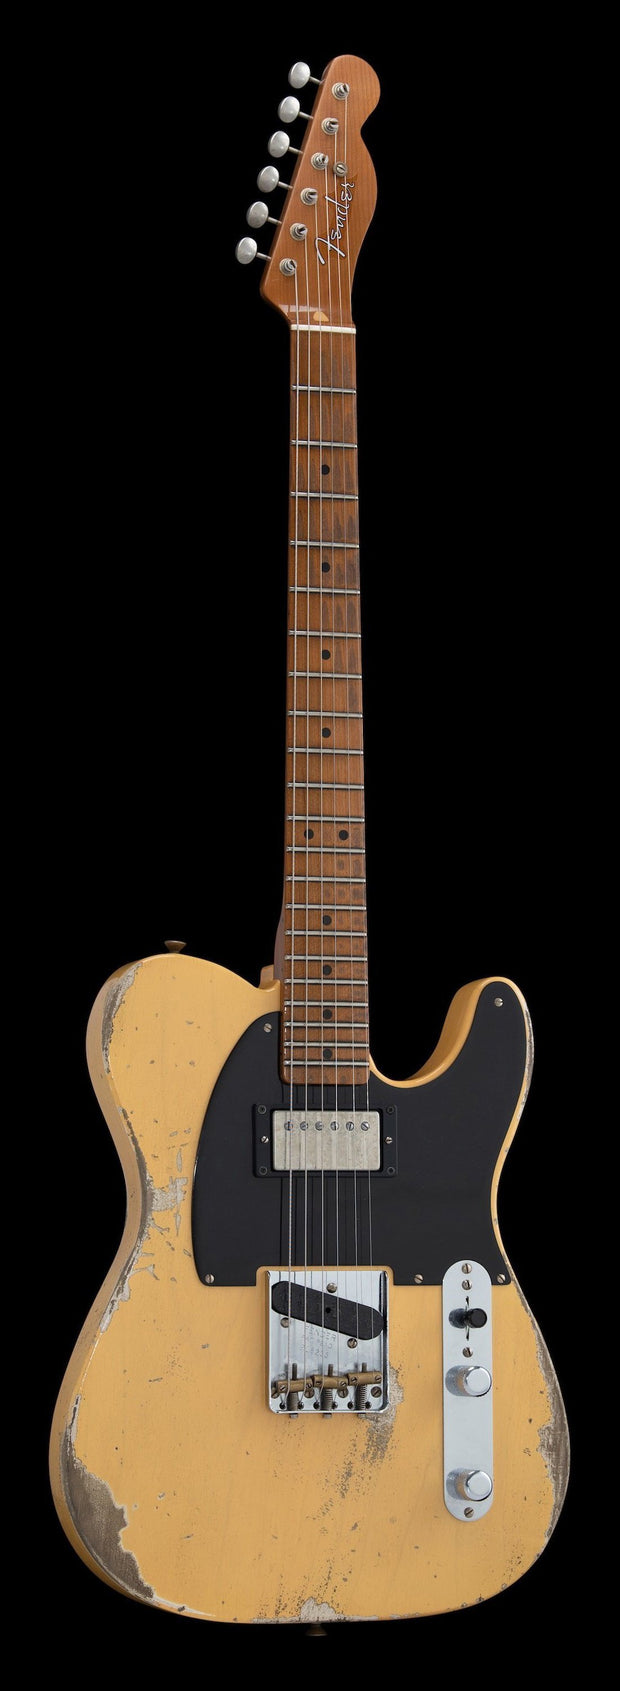 Fender Custom Shop NAMM Limited Edition '51 Telecaster HS - Nocaster Blonde, Heavy Relic